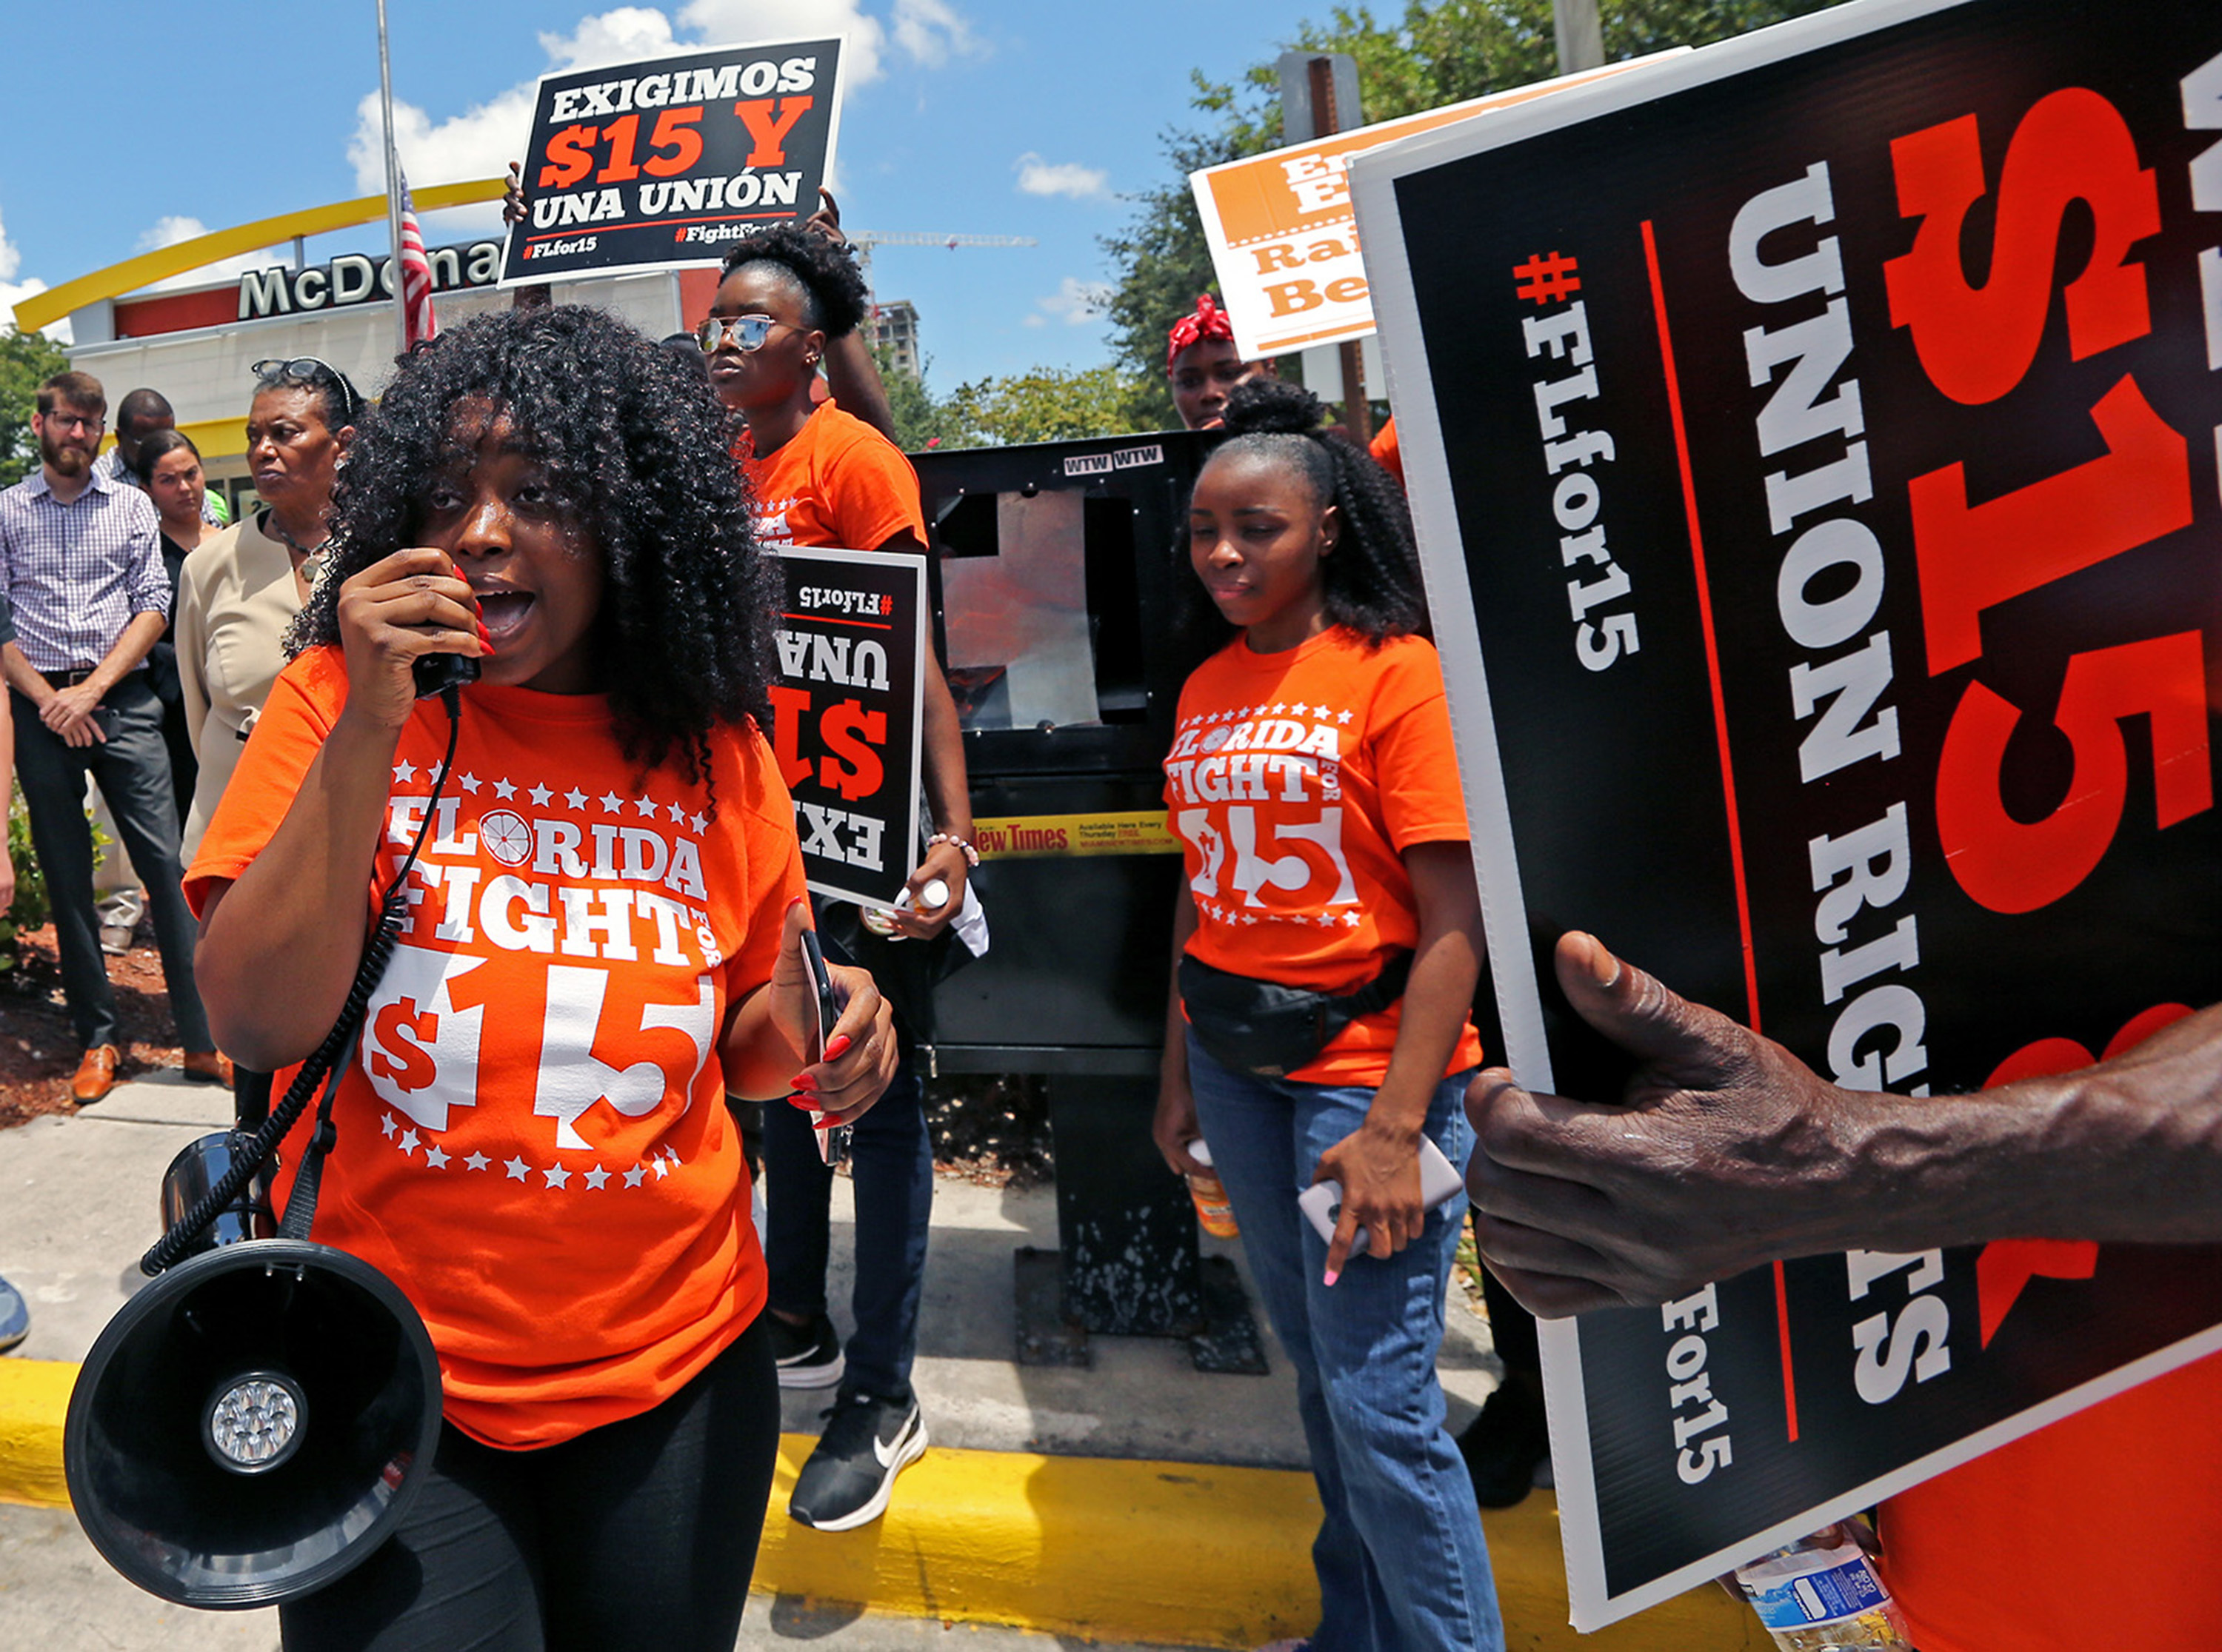 Commentary: A bad rule lets fast-food chains off the hook for workers' rights